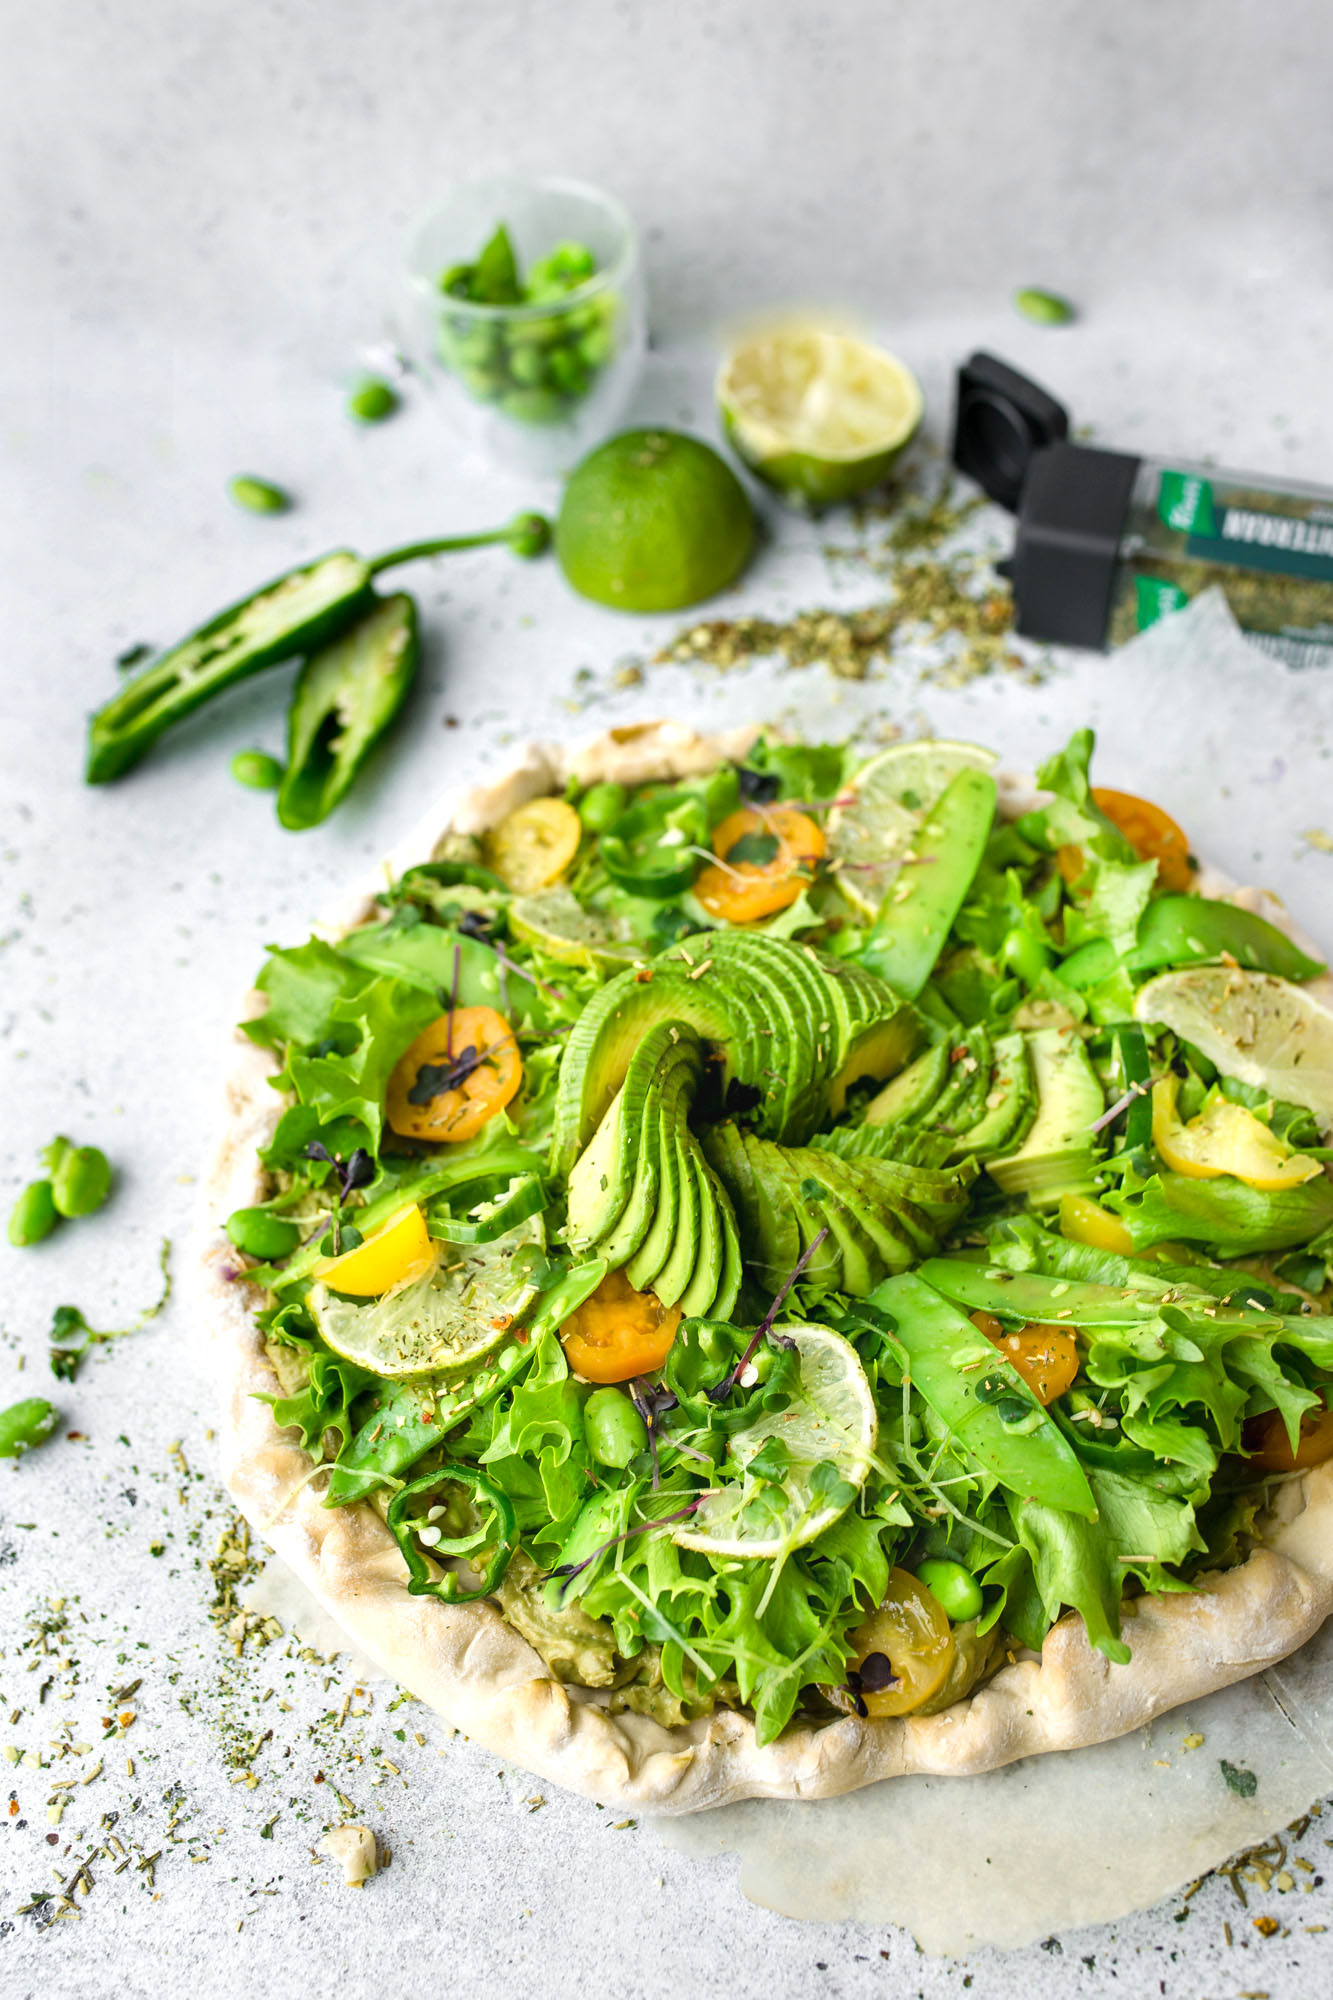 Frühlingshafte vegane Pizza mit Guacamole Topping